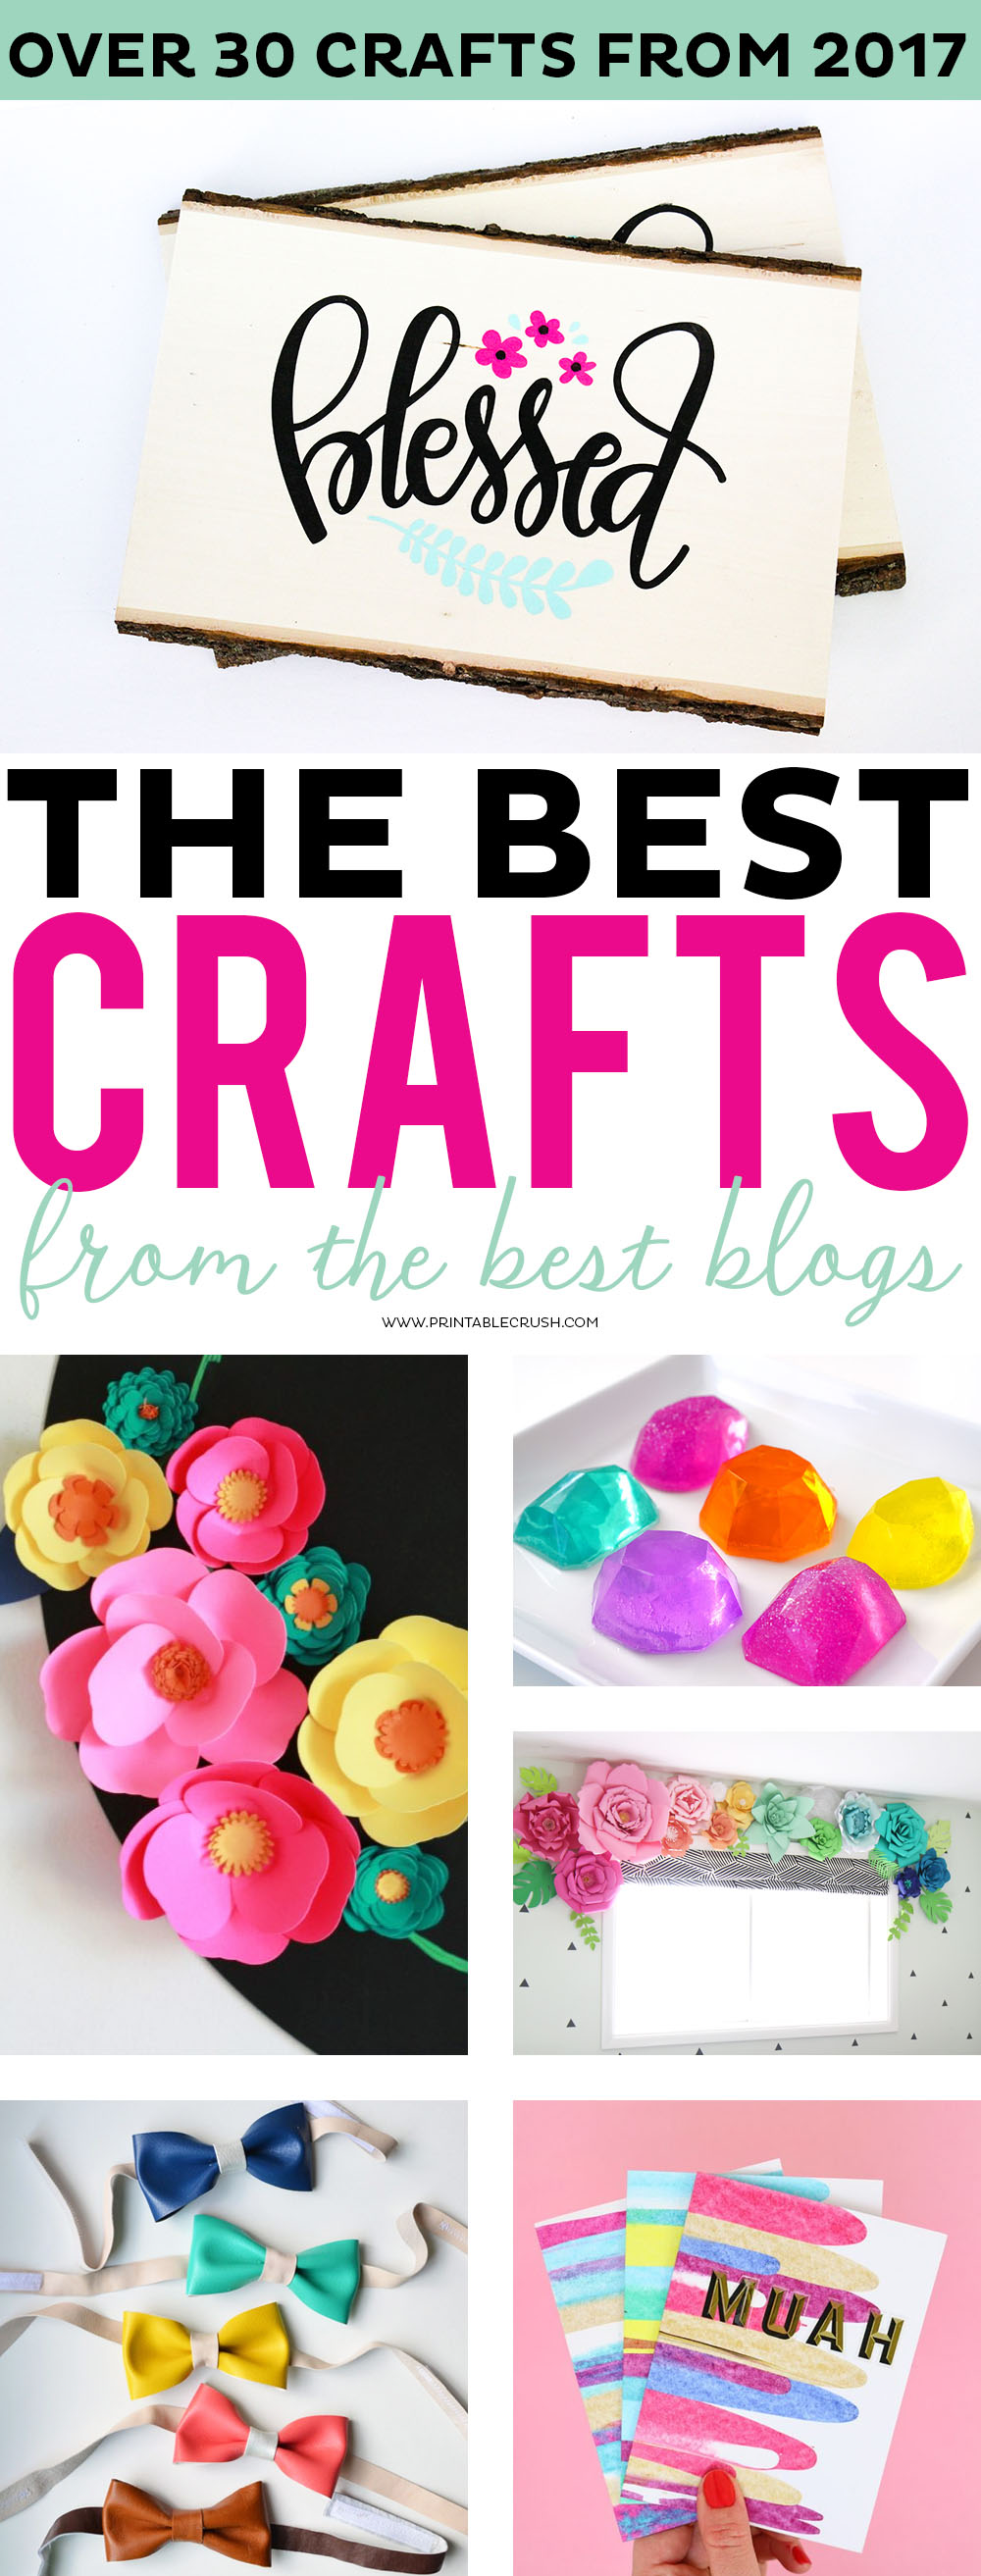 Every year, I do a best of Printable Crush round up...but this year, I've partnered with some of my favorite bloggers to bring you the BEST Crafts of 2017! via @printablecrush